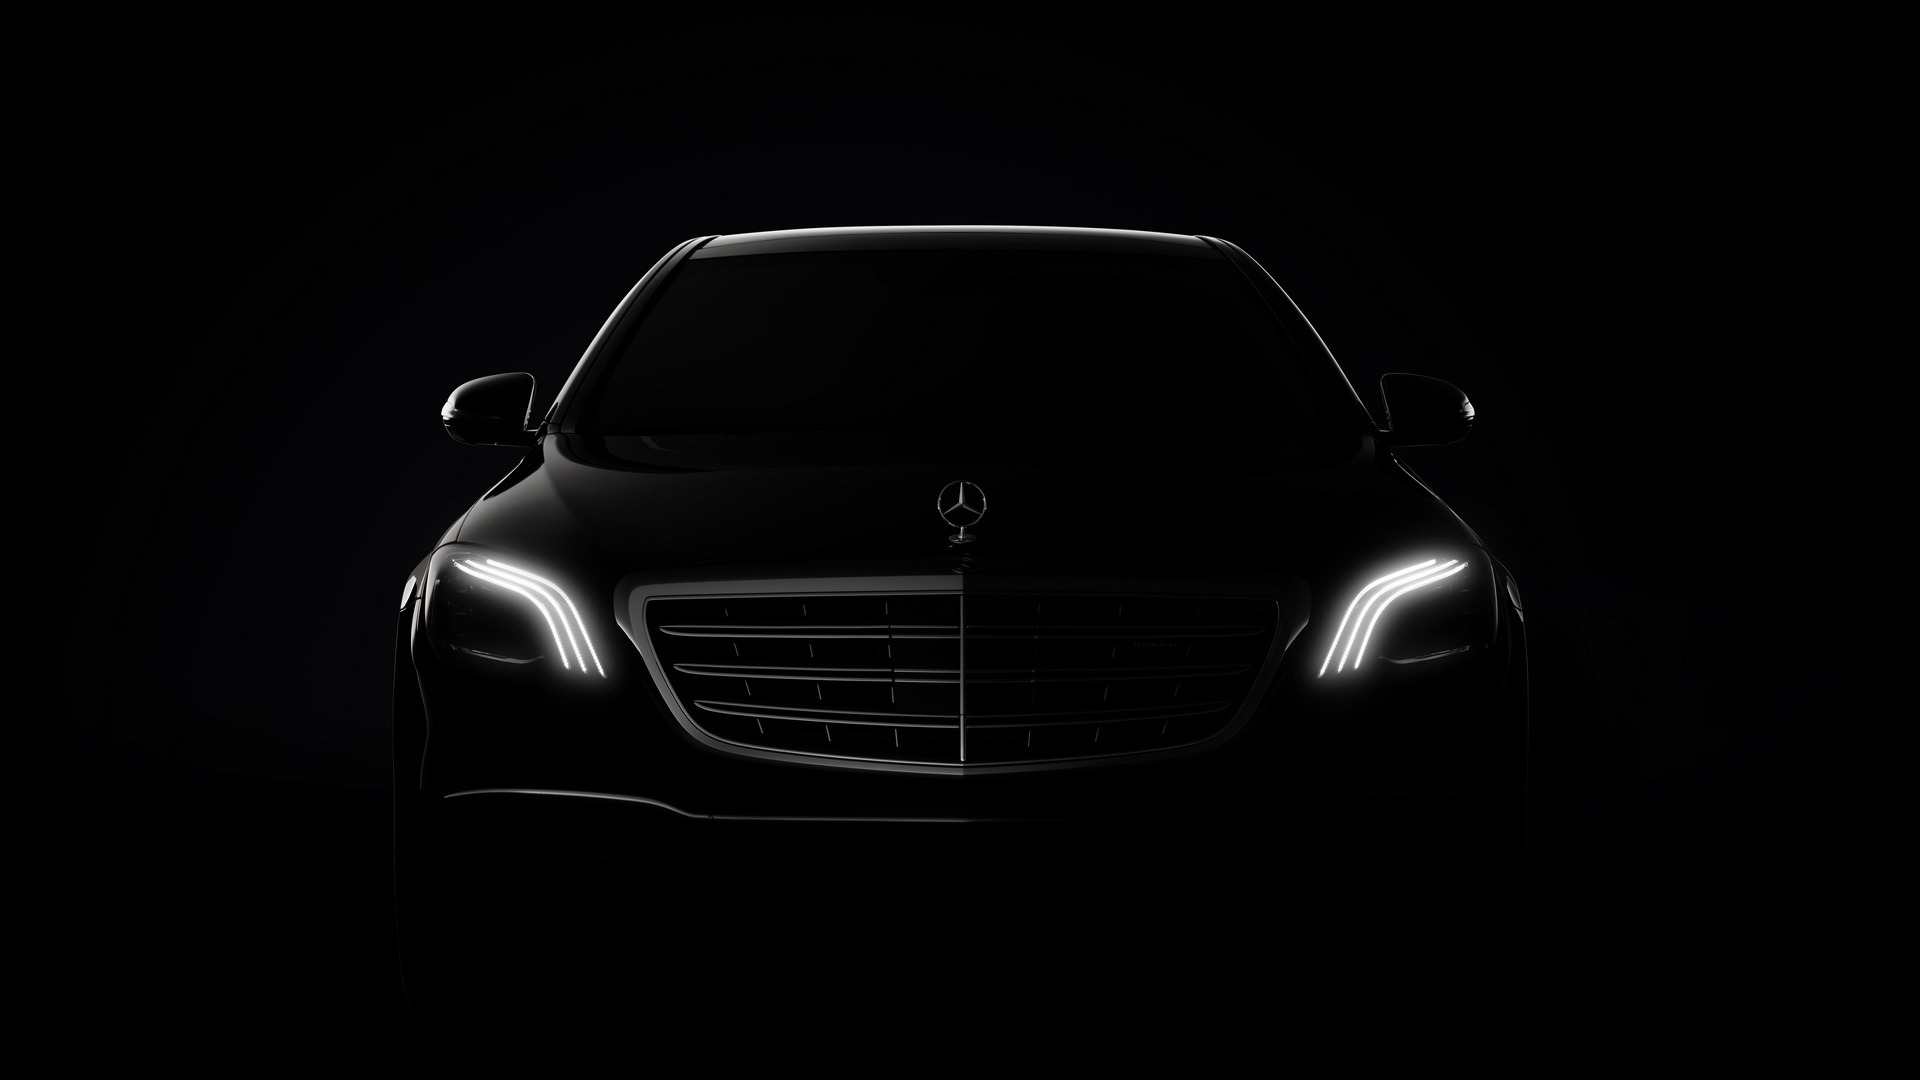 Mercedes Benz New Cars 2017 >> 2018 Mercedes S-Class Facelift: This Is More Of It